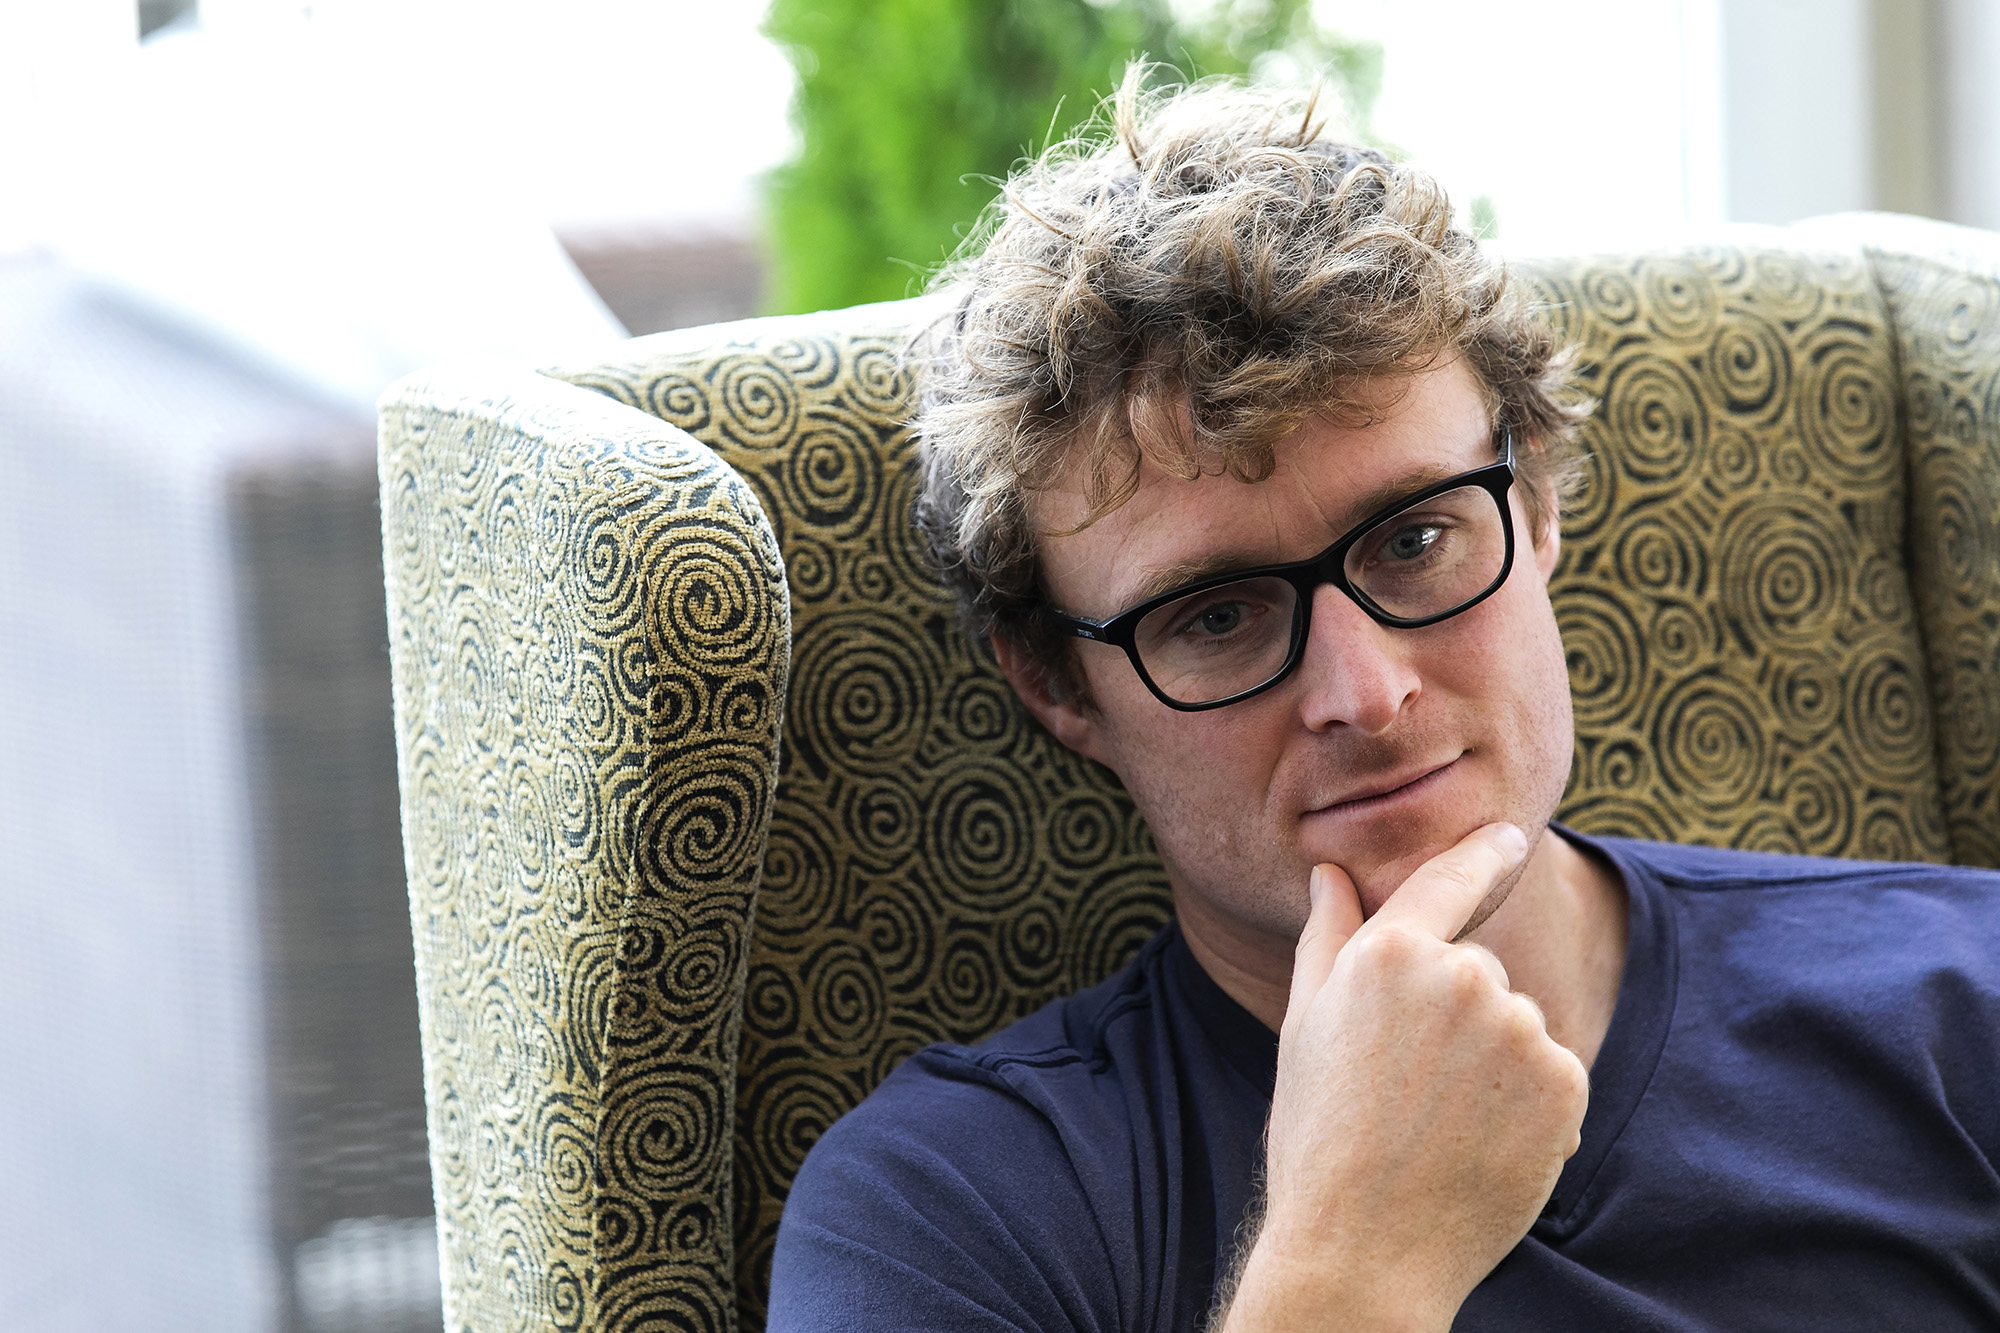 Paddy Cosgrave, fundador do Web Summit, em entrevista ao ECO - 26NOV20